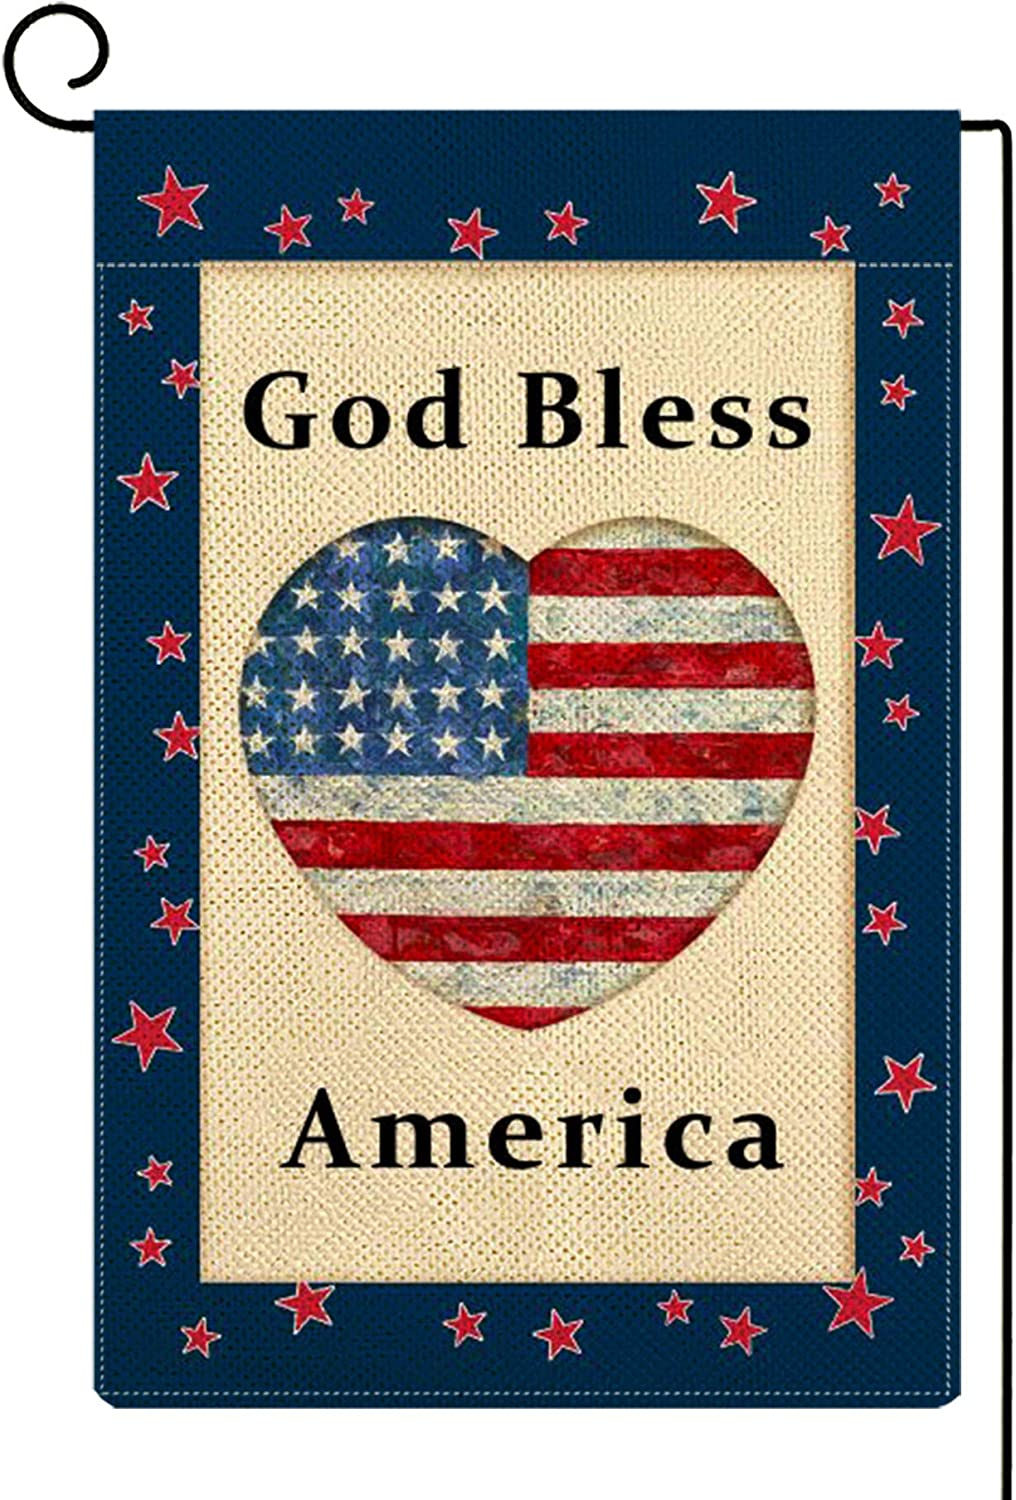 Molili God Bless America Garden Flag Burlap Vertical Double Sided,Farmhouse Veterans Day Patriotic American Flag Memorial Independence Day Garden Yard Decor ,Seasonal Outdoor Flag 12.5 x 18inch